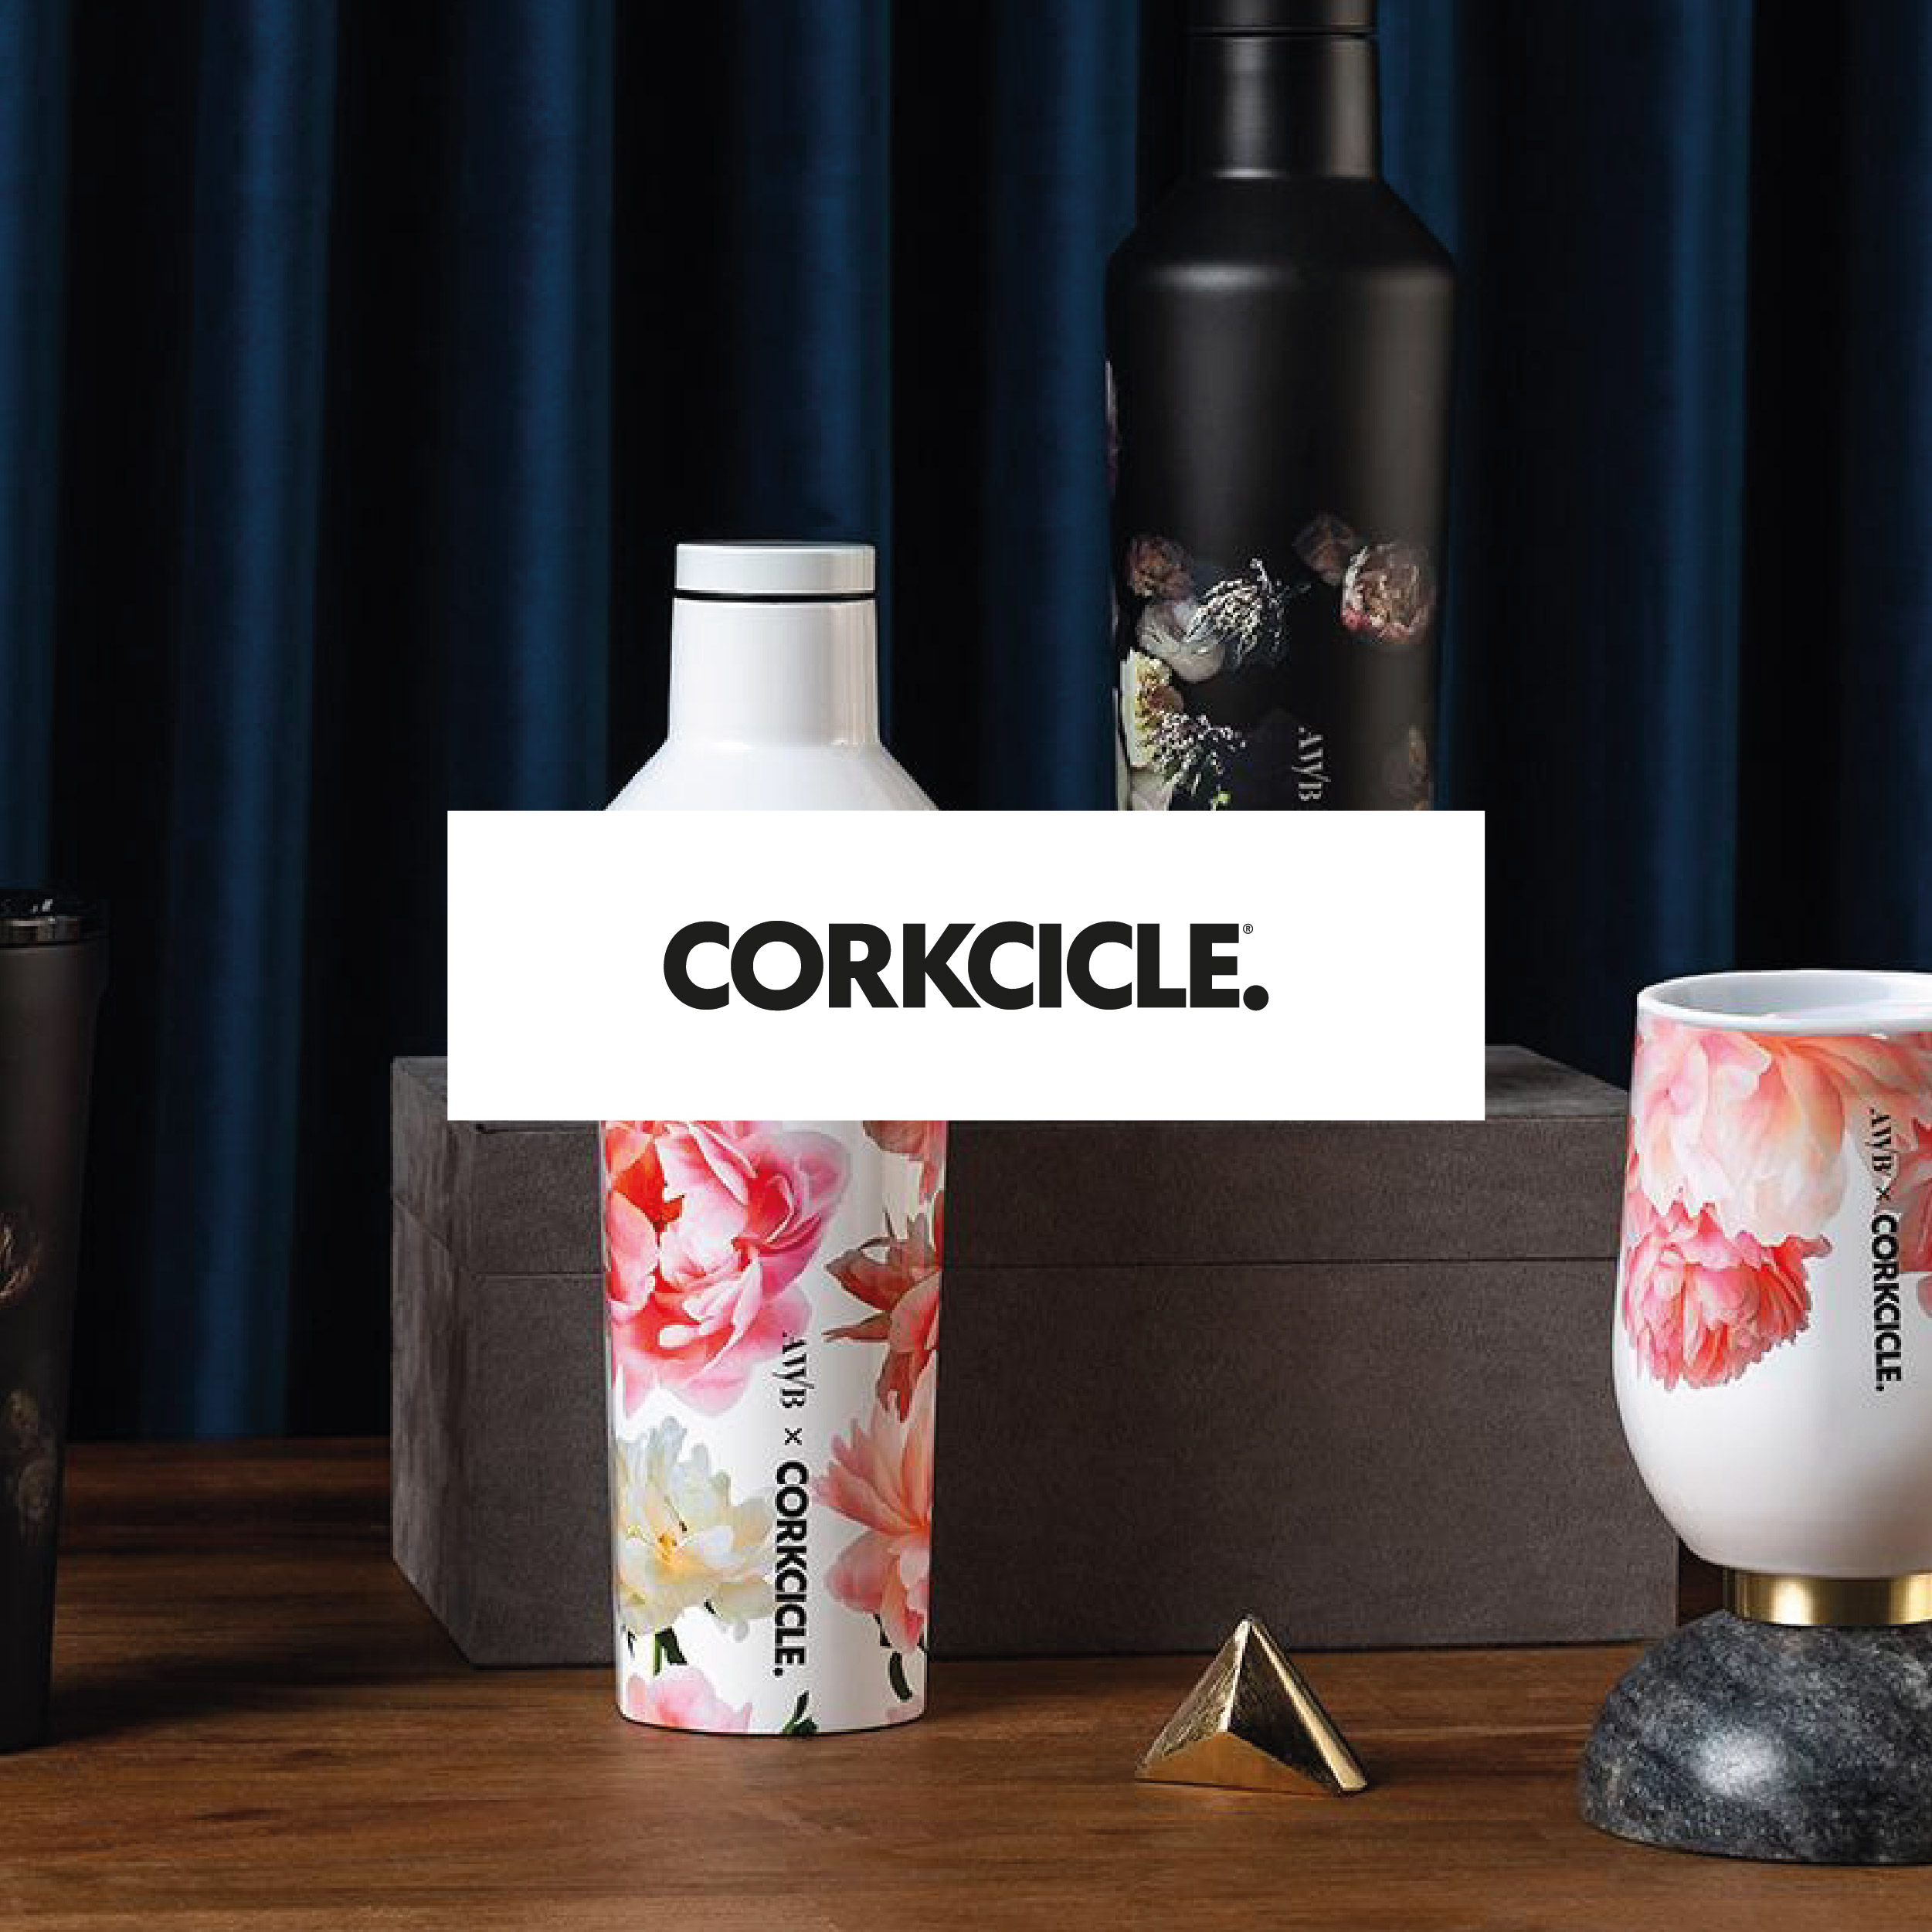 PromoBrand_Corkcicle_Promotional_Merchandise_Brands_Bounce_Creative_Designs